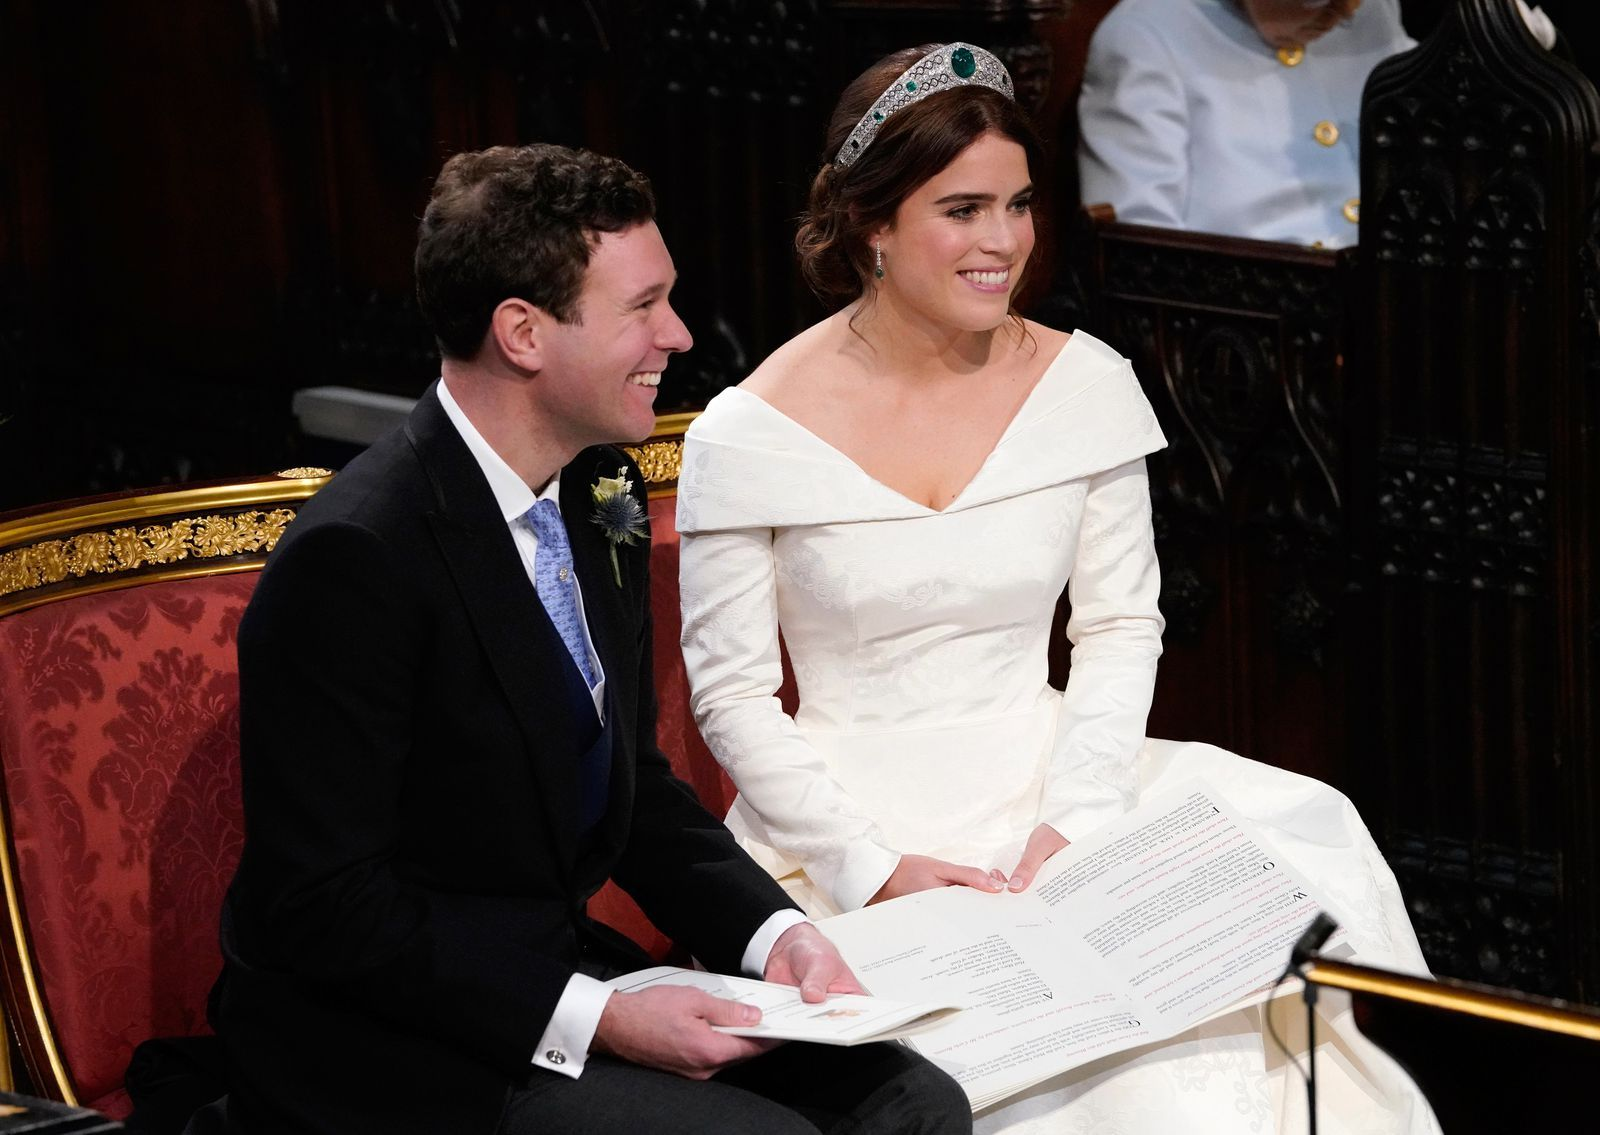 You Definitely Missed These Details in Princess Eugenie's